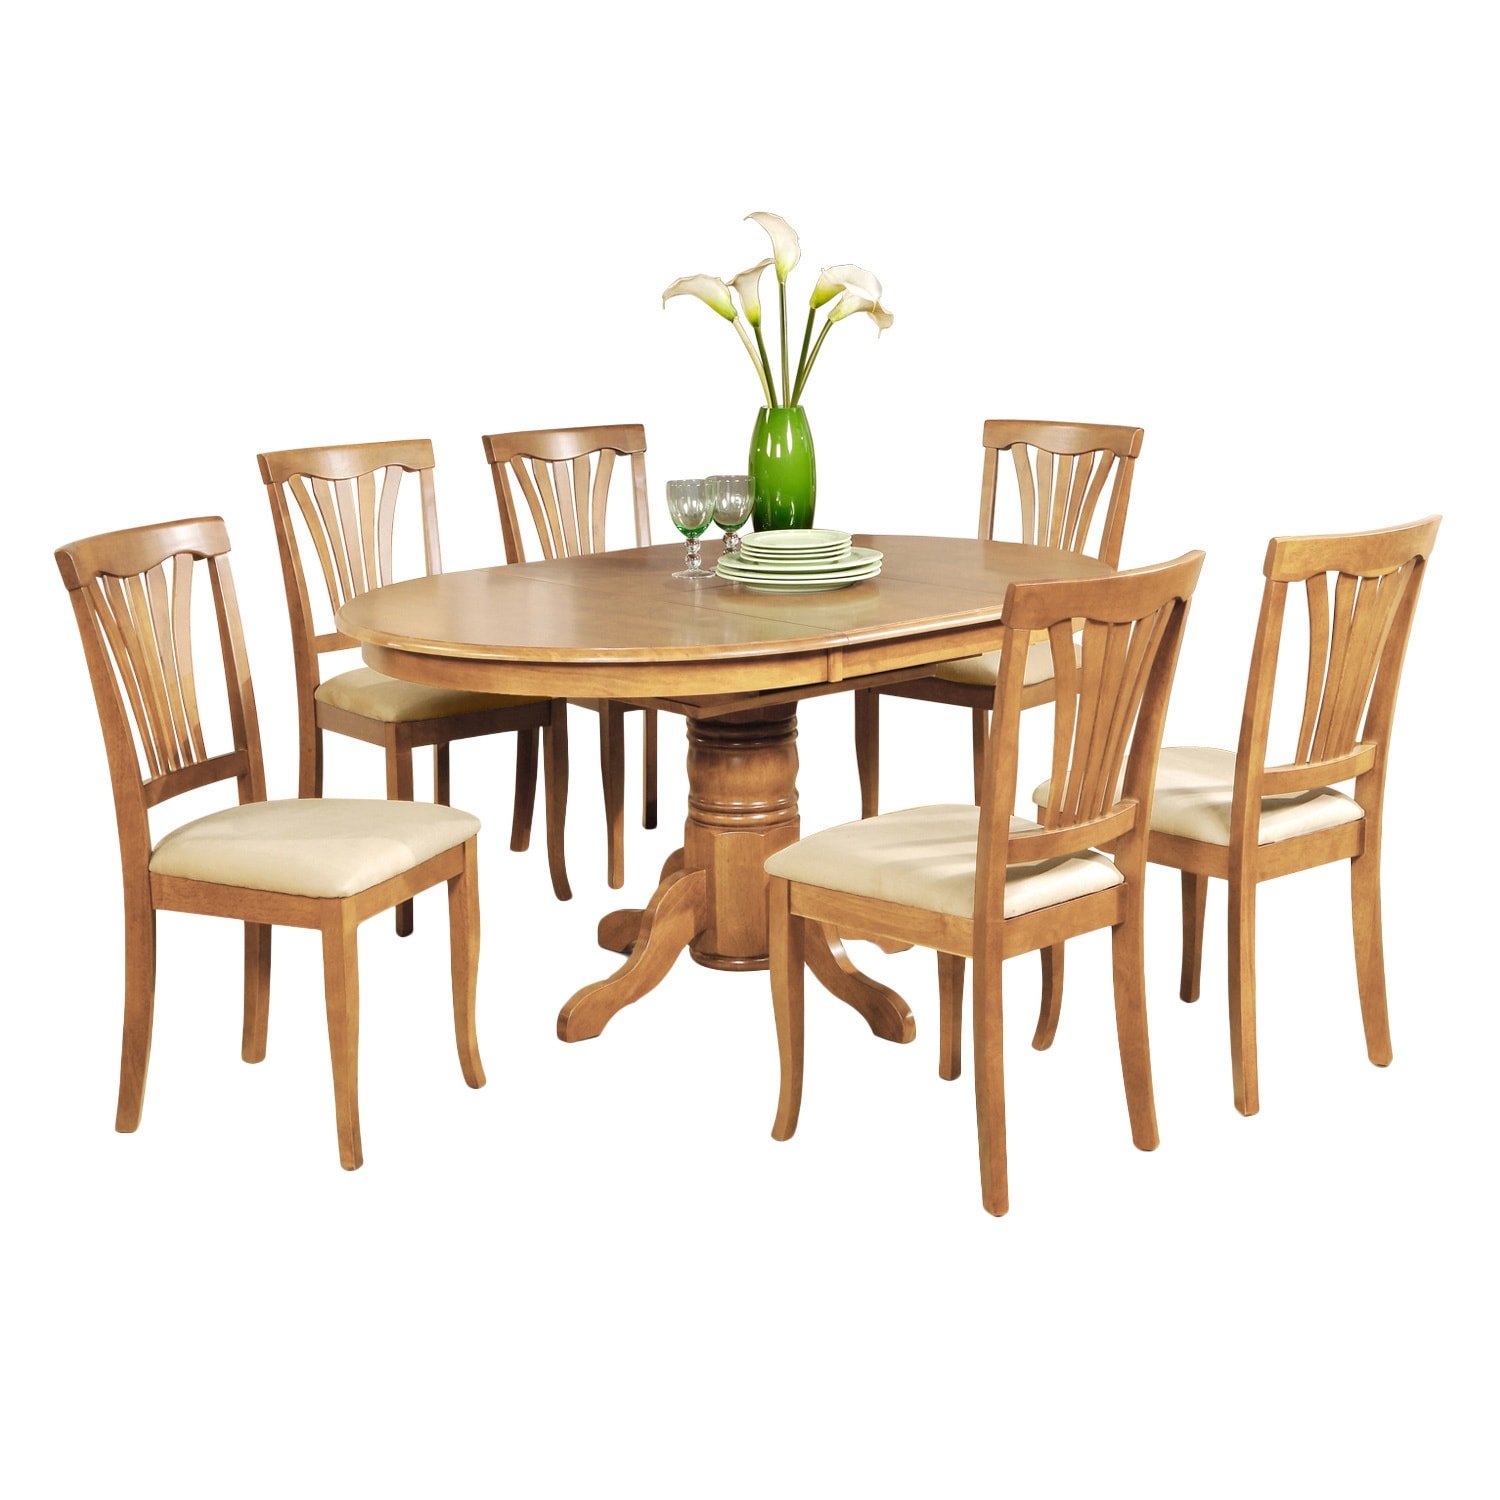 7 piece dining table set oval dinette table with leaf and 6 dining chairs in oak overstock. Black Bedroom Furniture Sets. Home Design Ideas